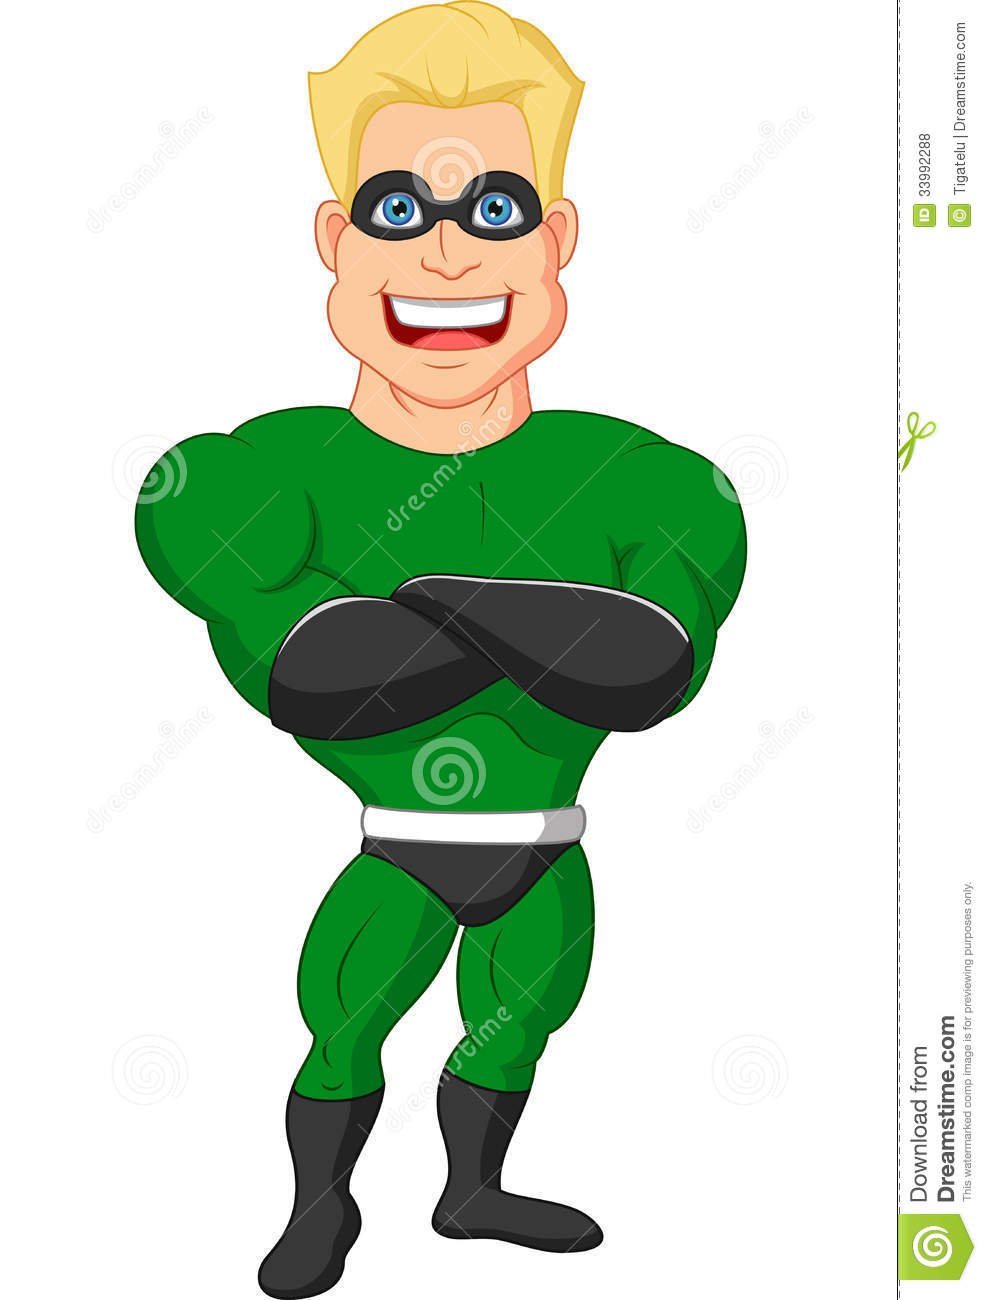 Superhero Cartoon Posing Royalty Free Stock Photos  Image: 33992288